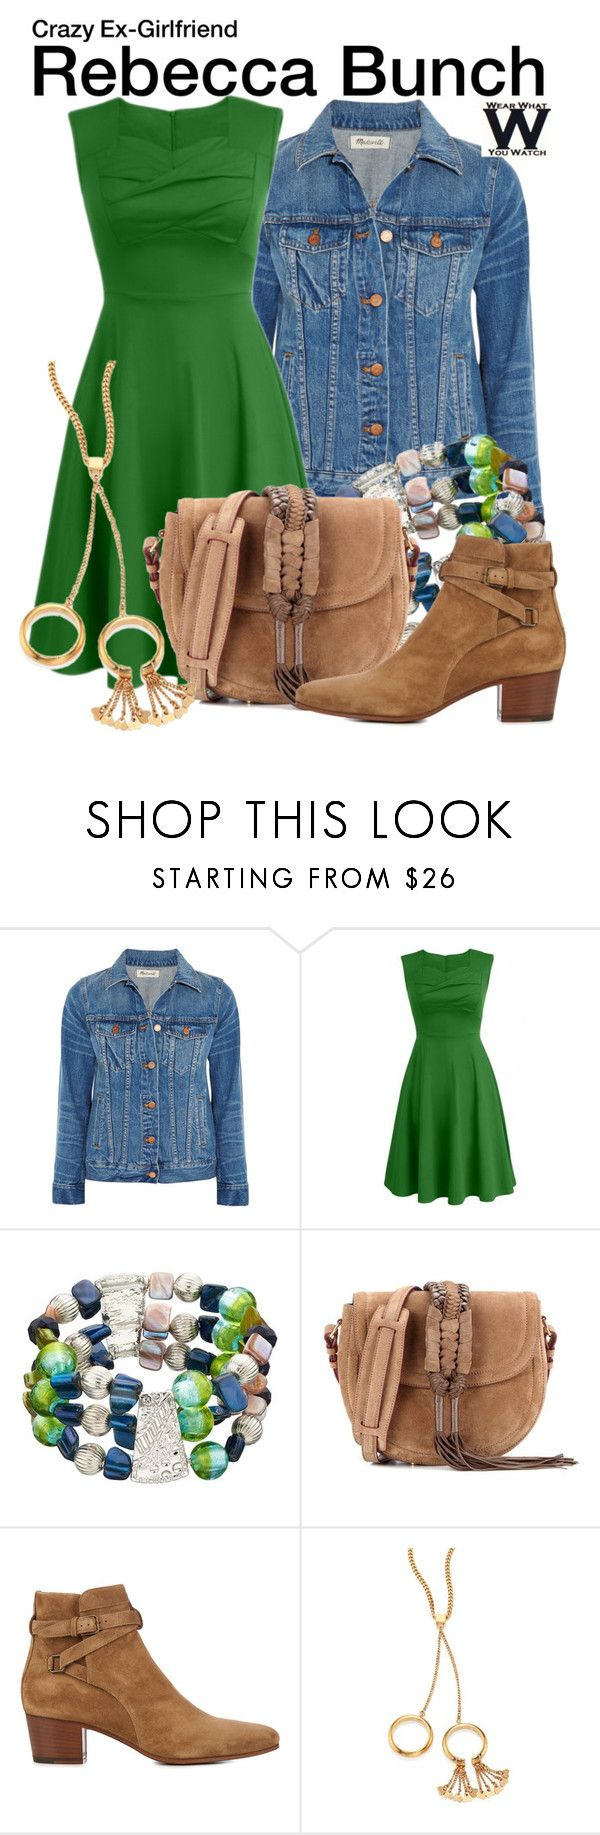 """Crazy Ex-Girlfriend"" by wearwhatyouwatch ❤ liked on Polyvore featuring Madewell, Altuzarra, Yves Saint Laurent, Chloé, television and wearwhatyouwatch"